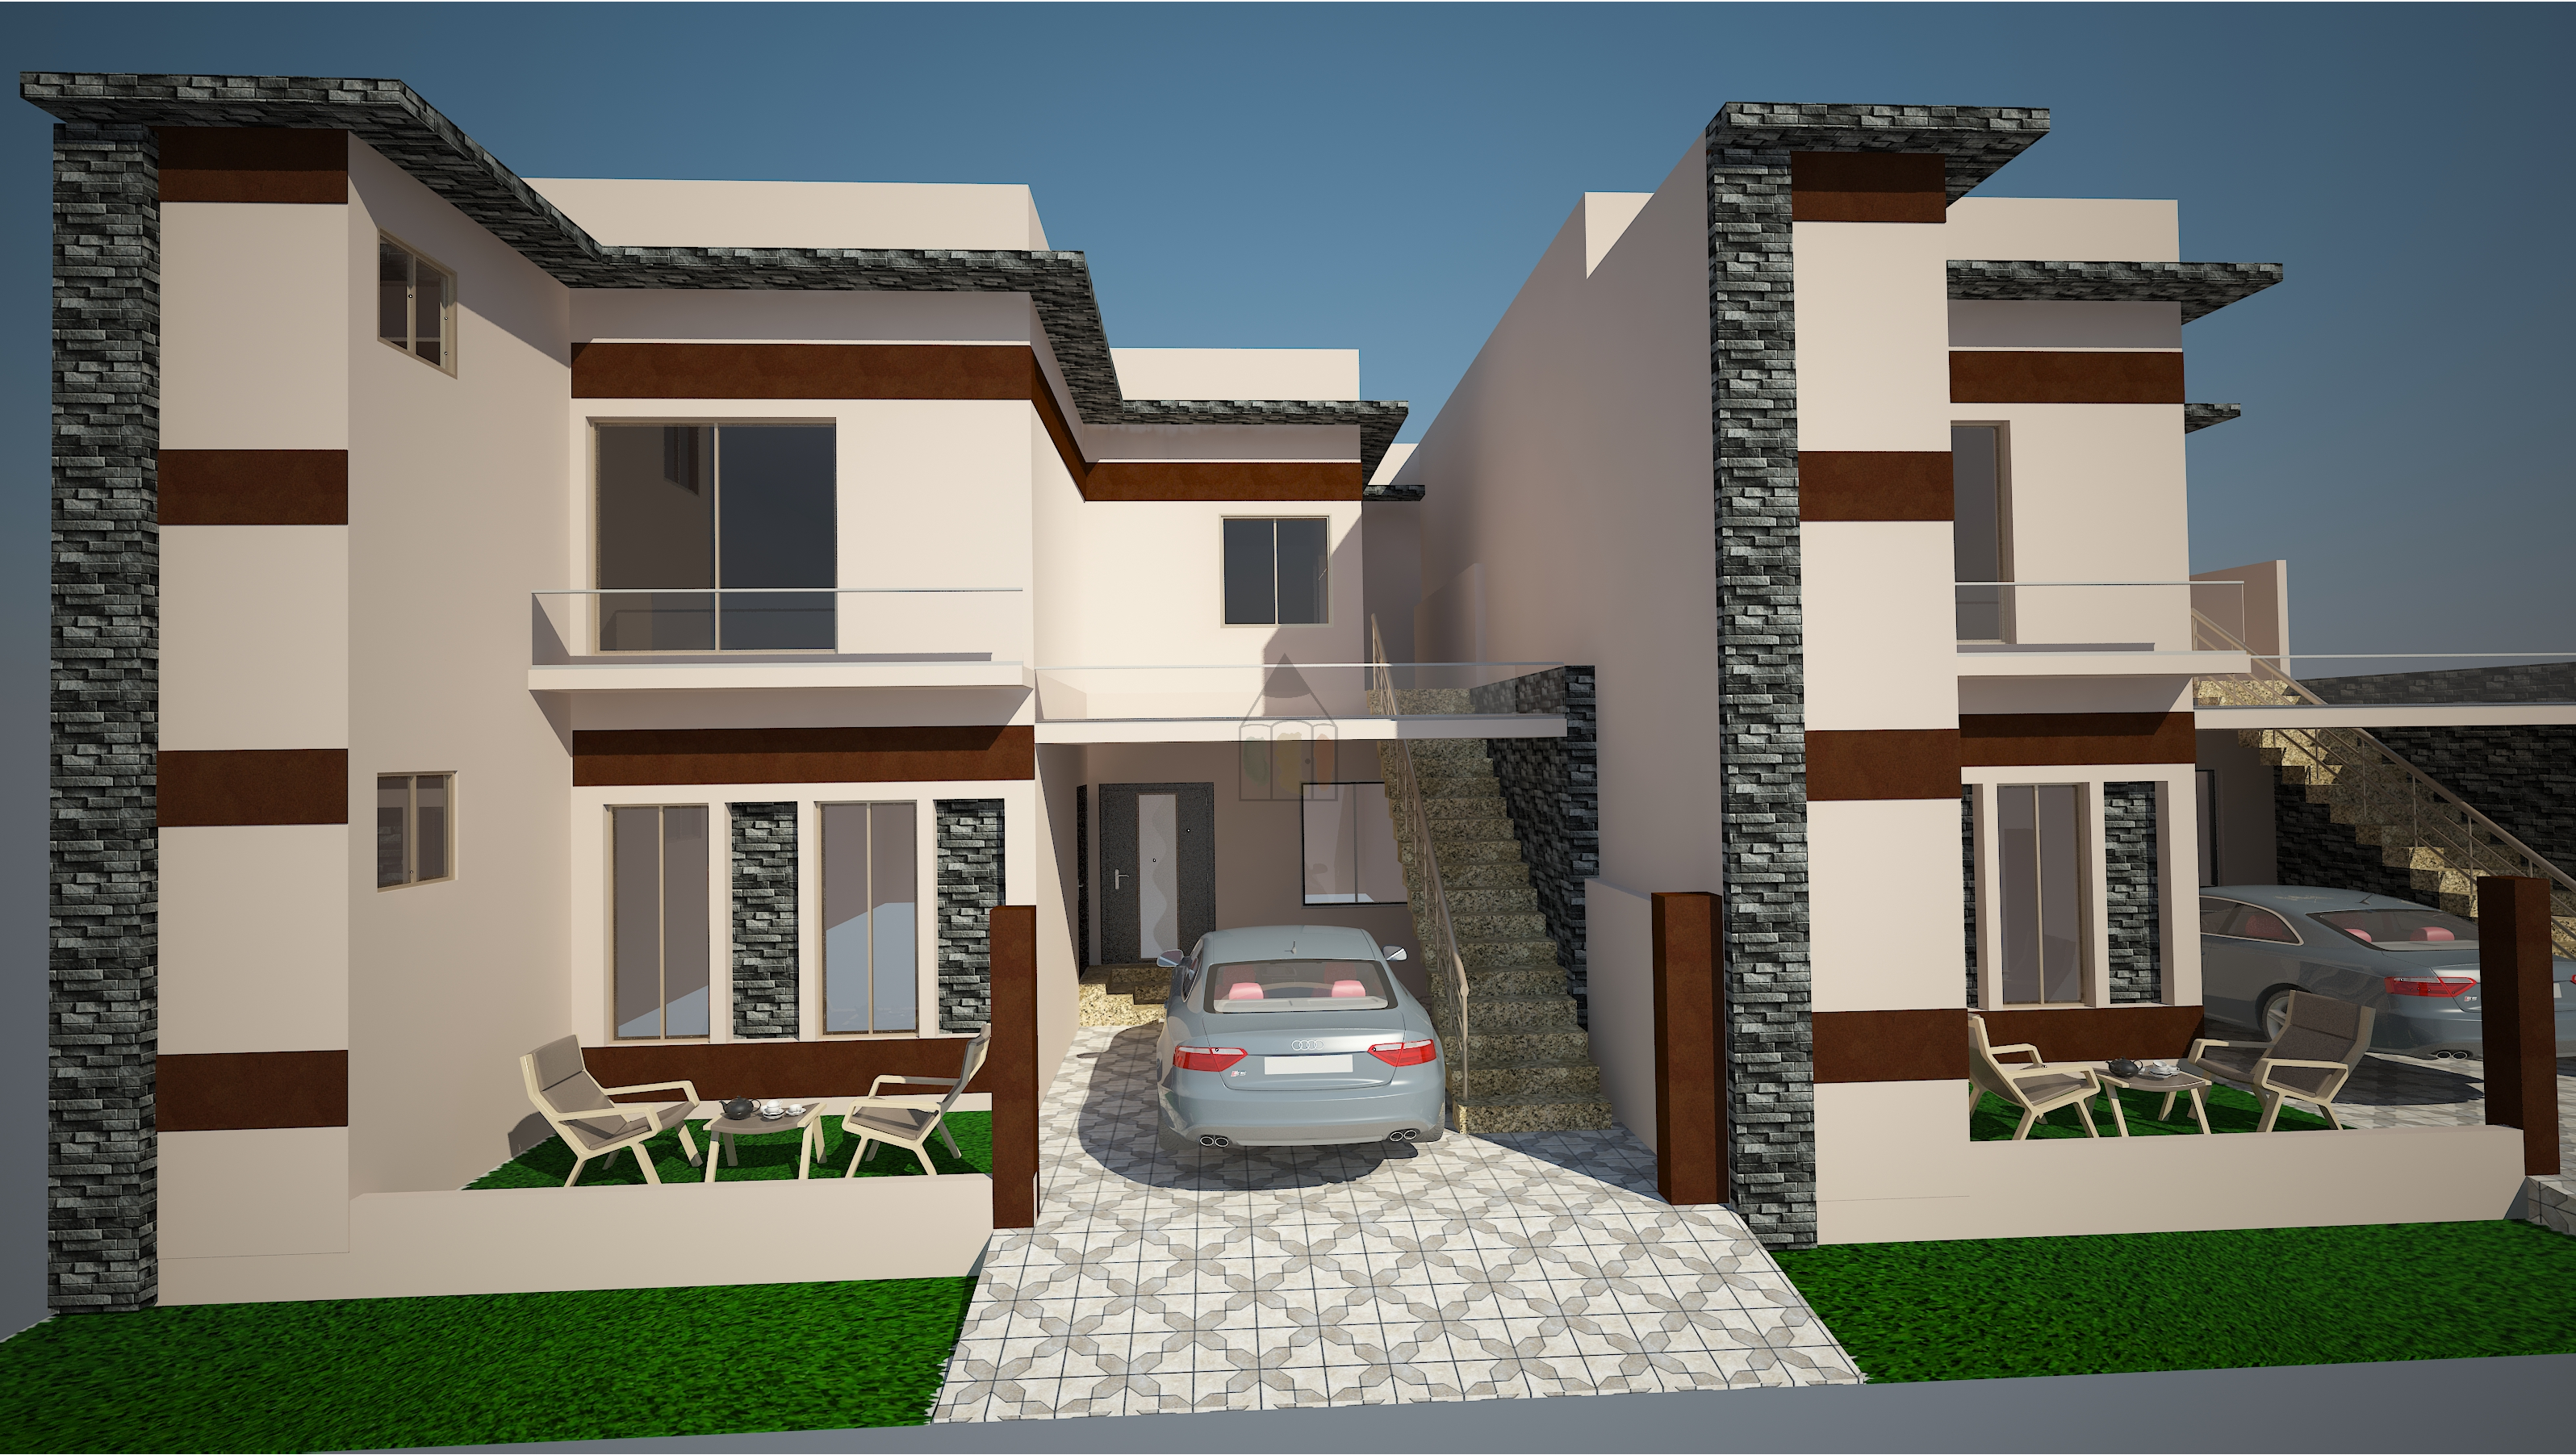 7 Marla House Front Elevation Designs : Marla house design model has bedroom with attached